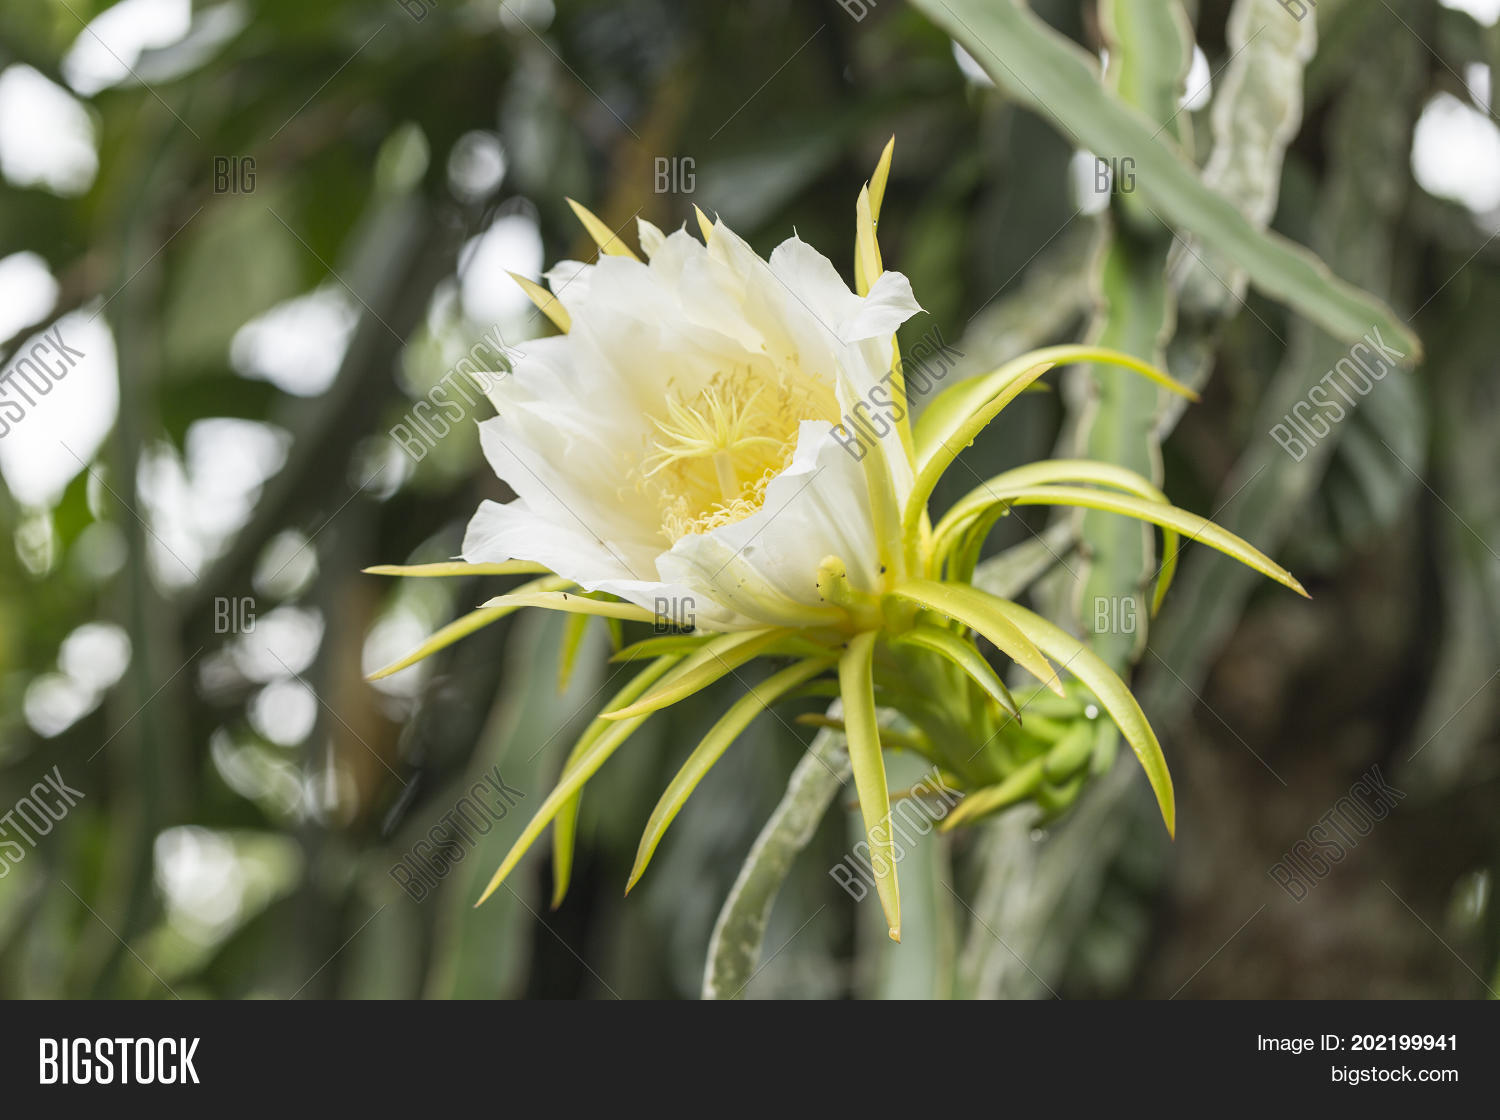 Blossom white dragon image photo free trial bigstock blossom white dragon fruit flower on blooming hylocereus cactaceae night blooming flower mightylinksfo